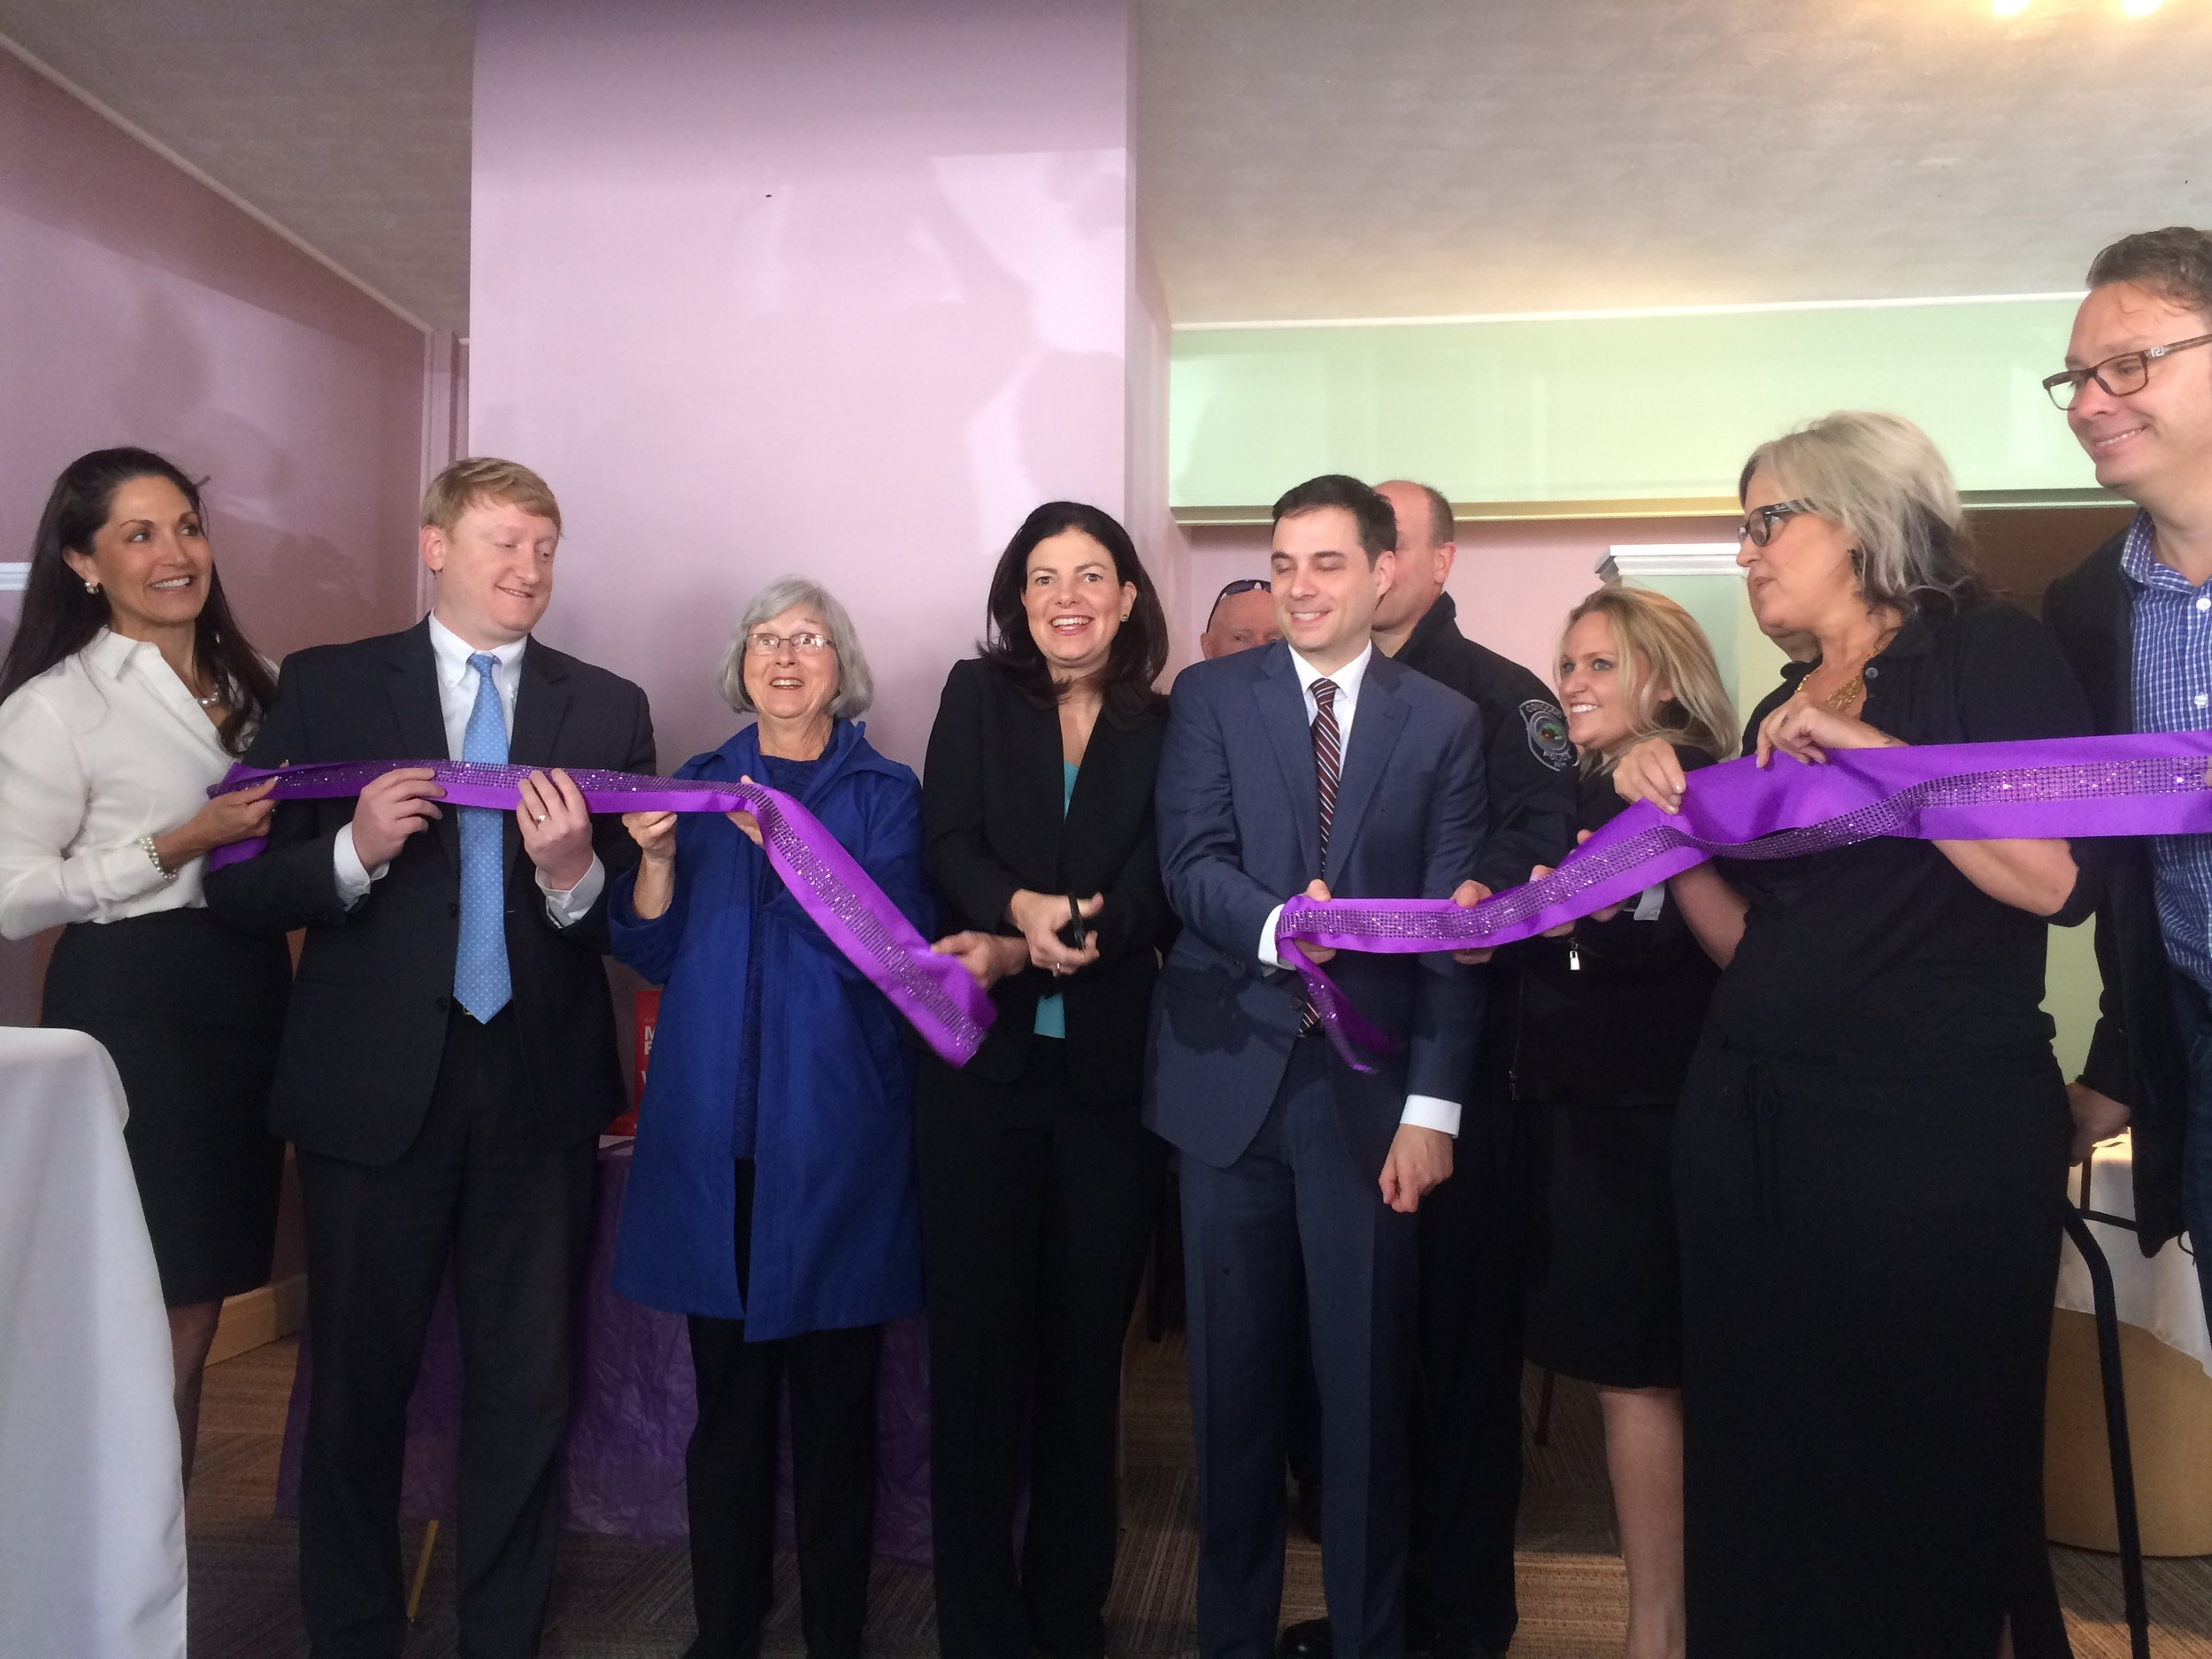 Former U.S. Senator Kelly Ayotte (center), State Senator Dan Feltes (left) and the former state Drug Czar attended the Concord Center's ribbon cutting last May.  CREDIT PAIGE SUTHERLAND/NHPR